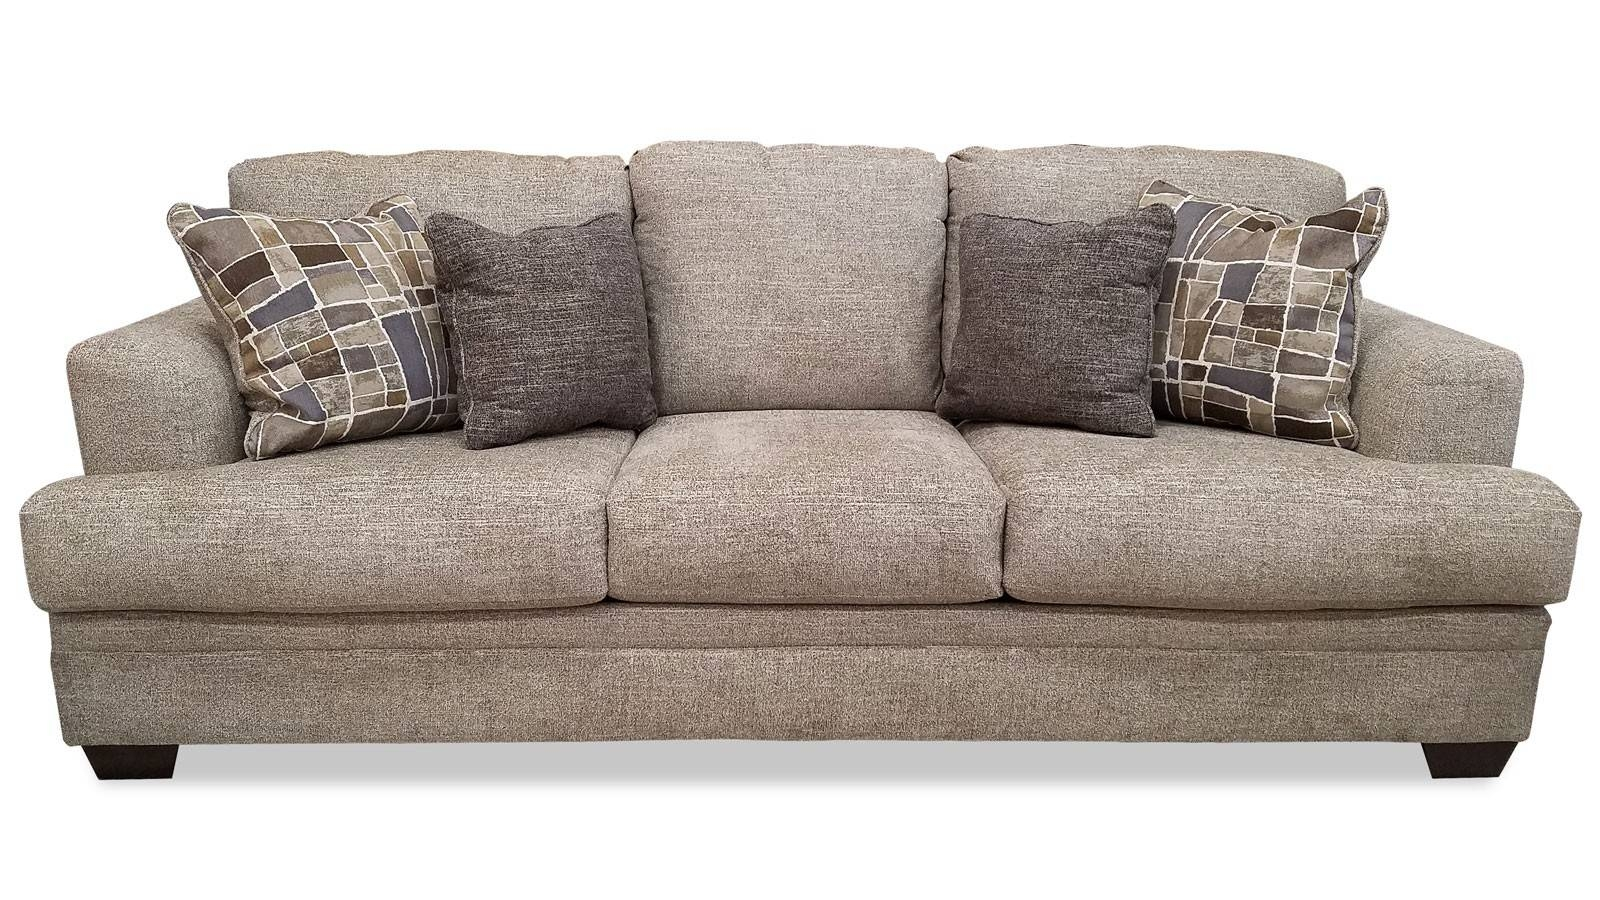 Barrish Sisal Sofa | Gallery Furniture intended for Sofas (Image 2 of 15)